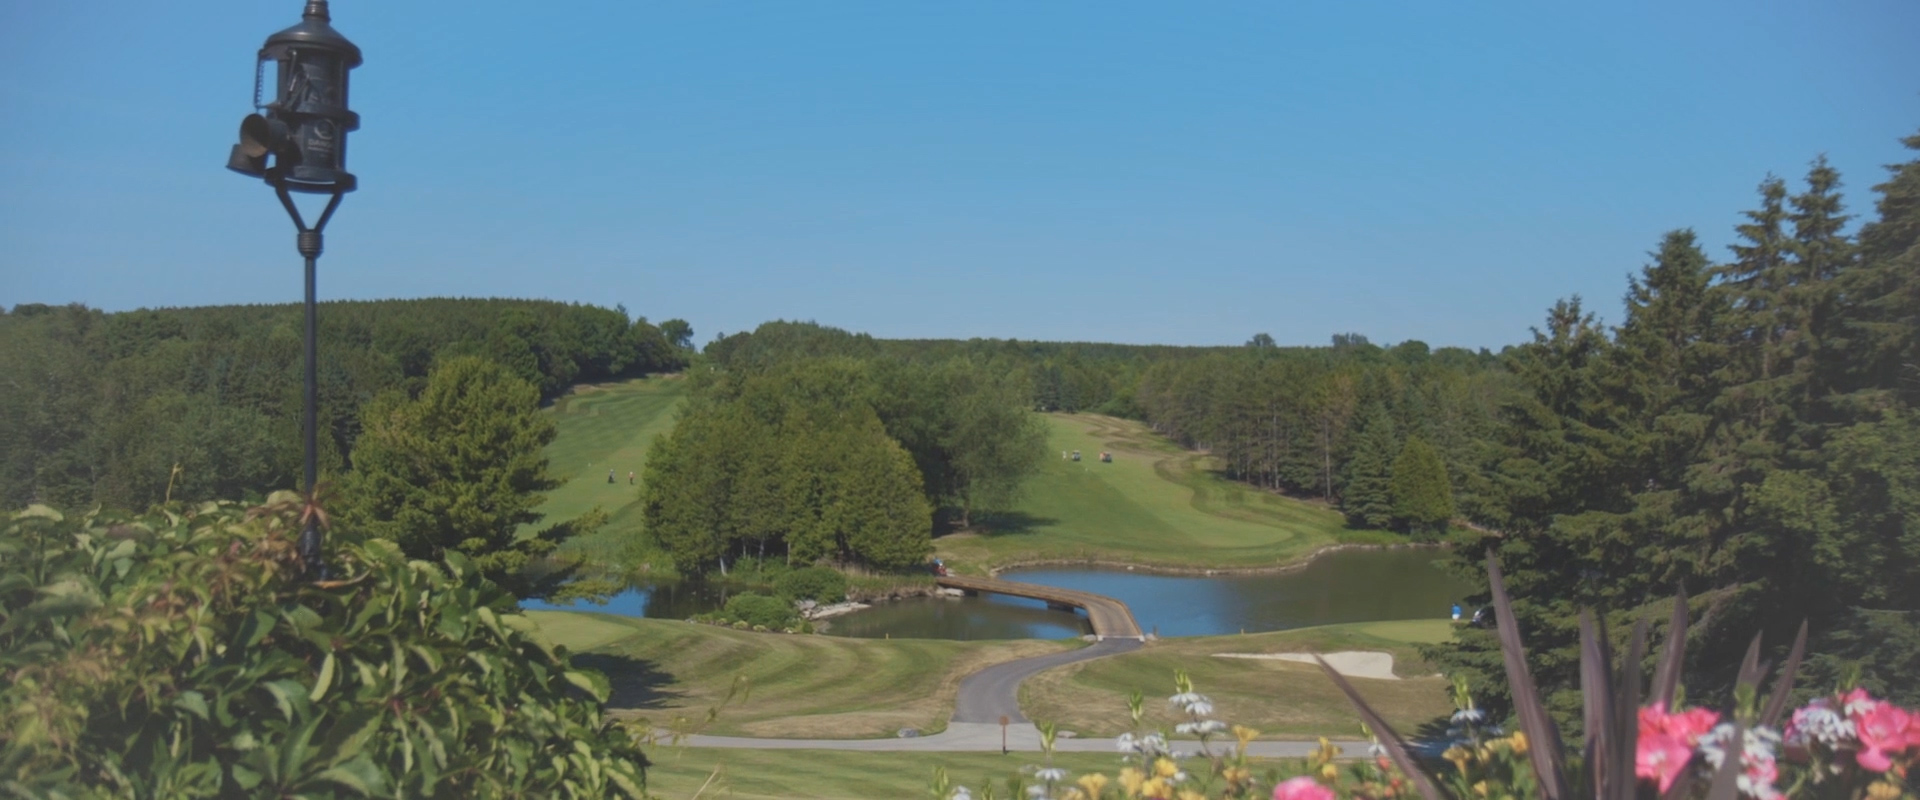 An image of a King valley golf course on the day of a wedding; taken from a Toronto Wedding Video